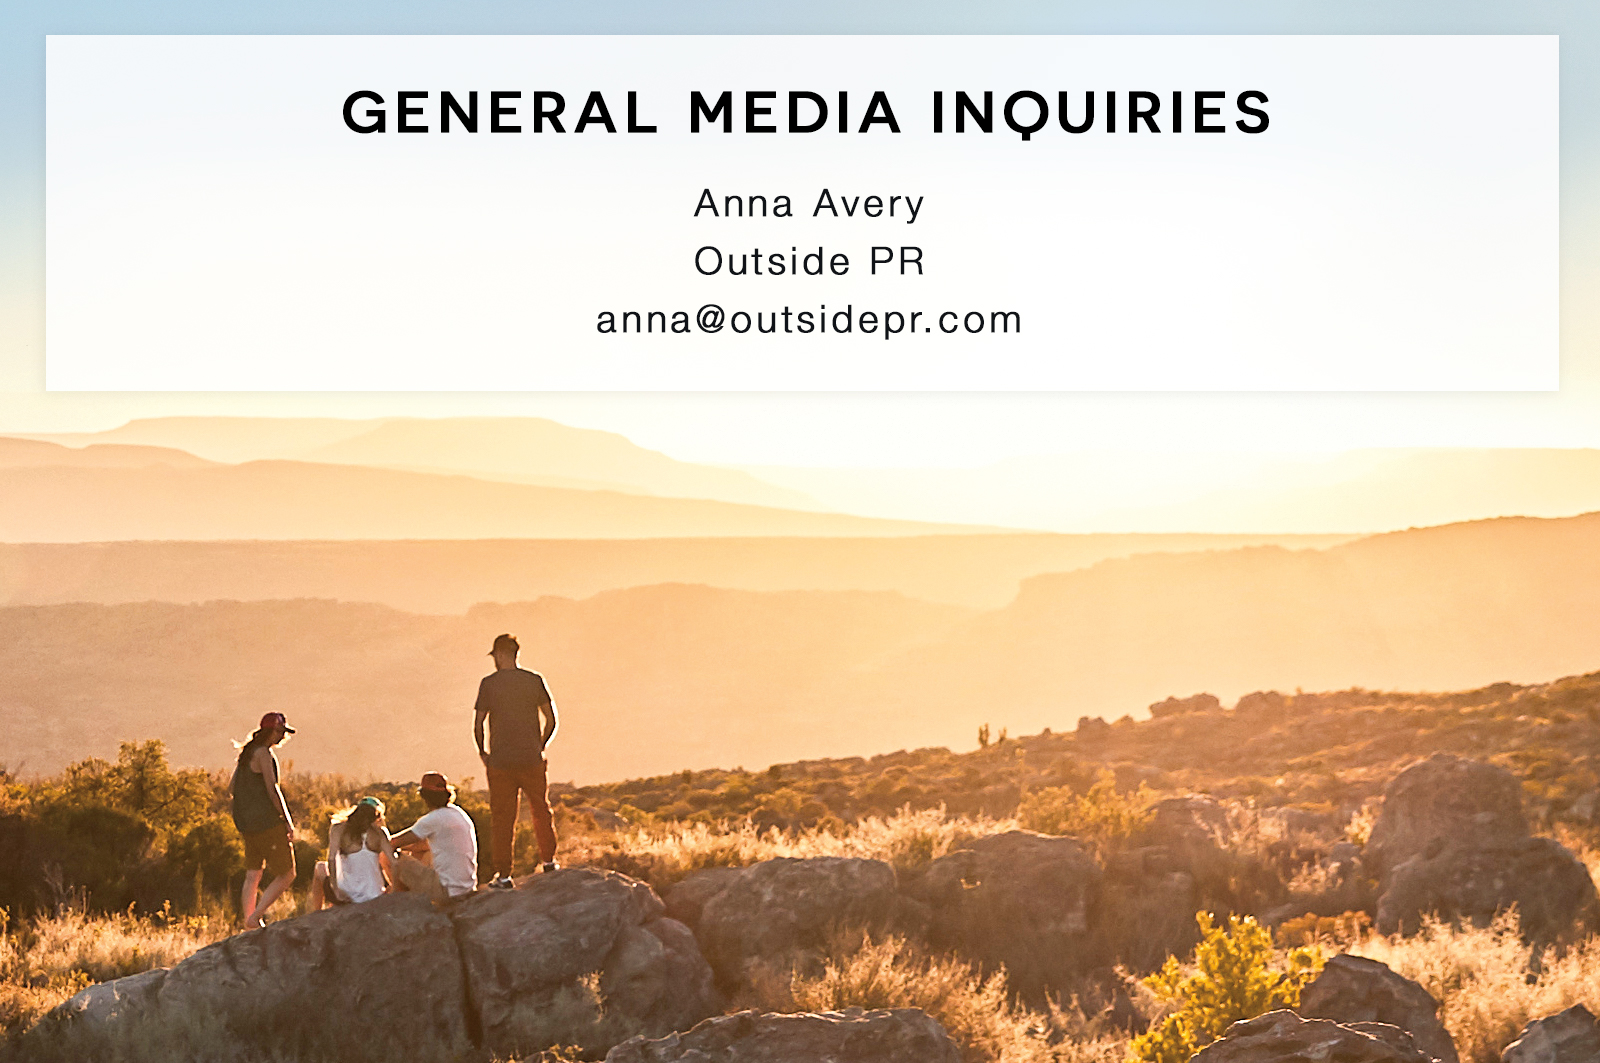 general media inquiries, contact anna@outsidepr.com